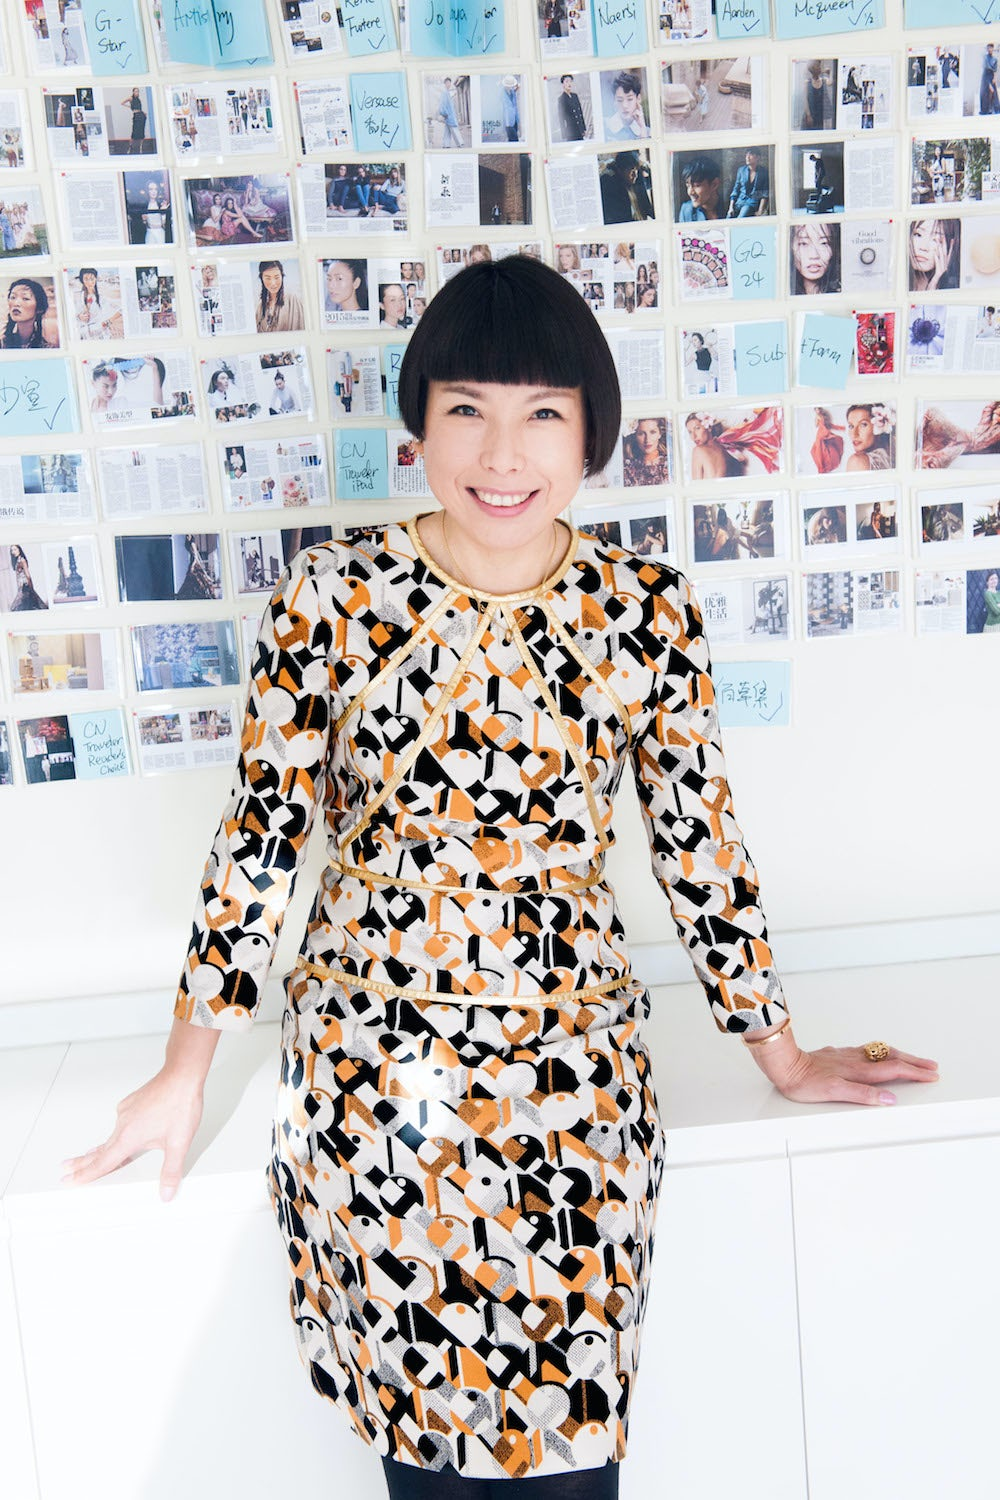 Angelica Cheung, editor-in-chief of Vogue China | Source: Courtesy